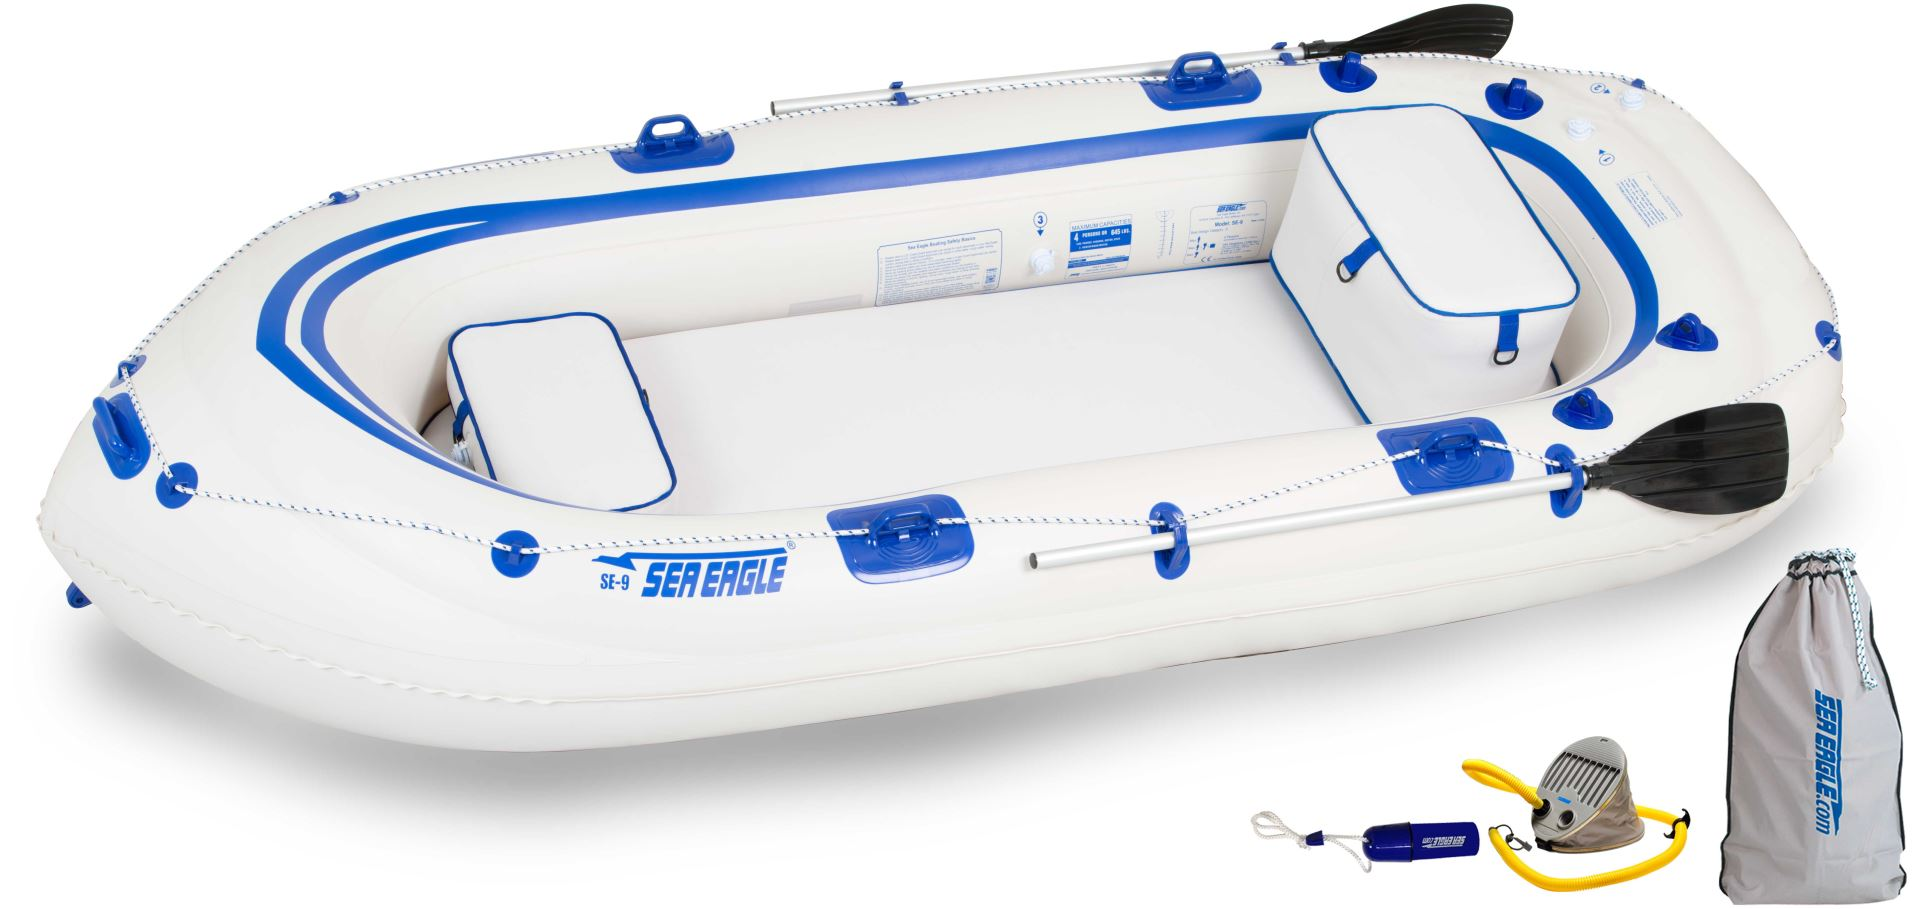 startup sea eagle 9 inflatable raft